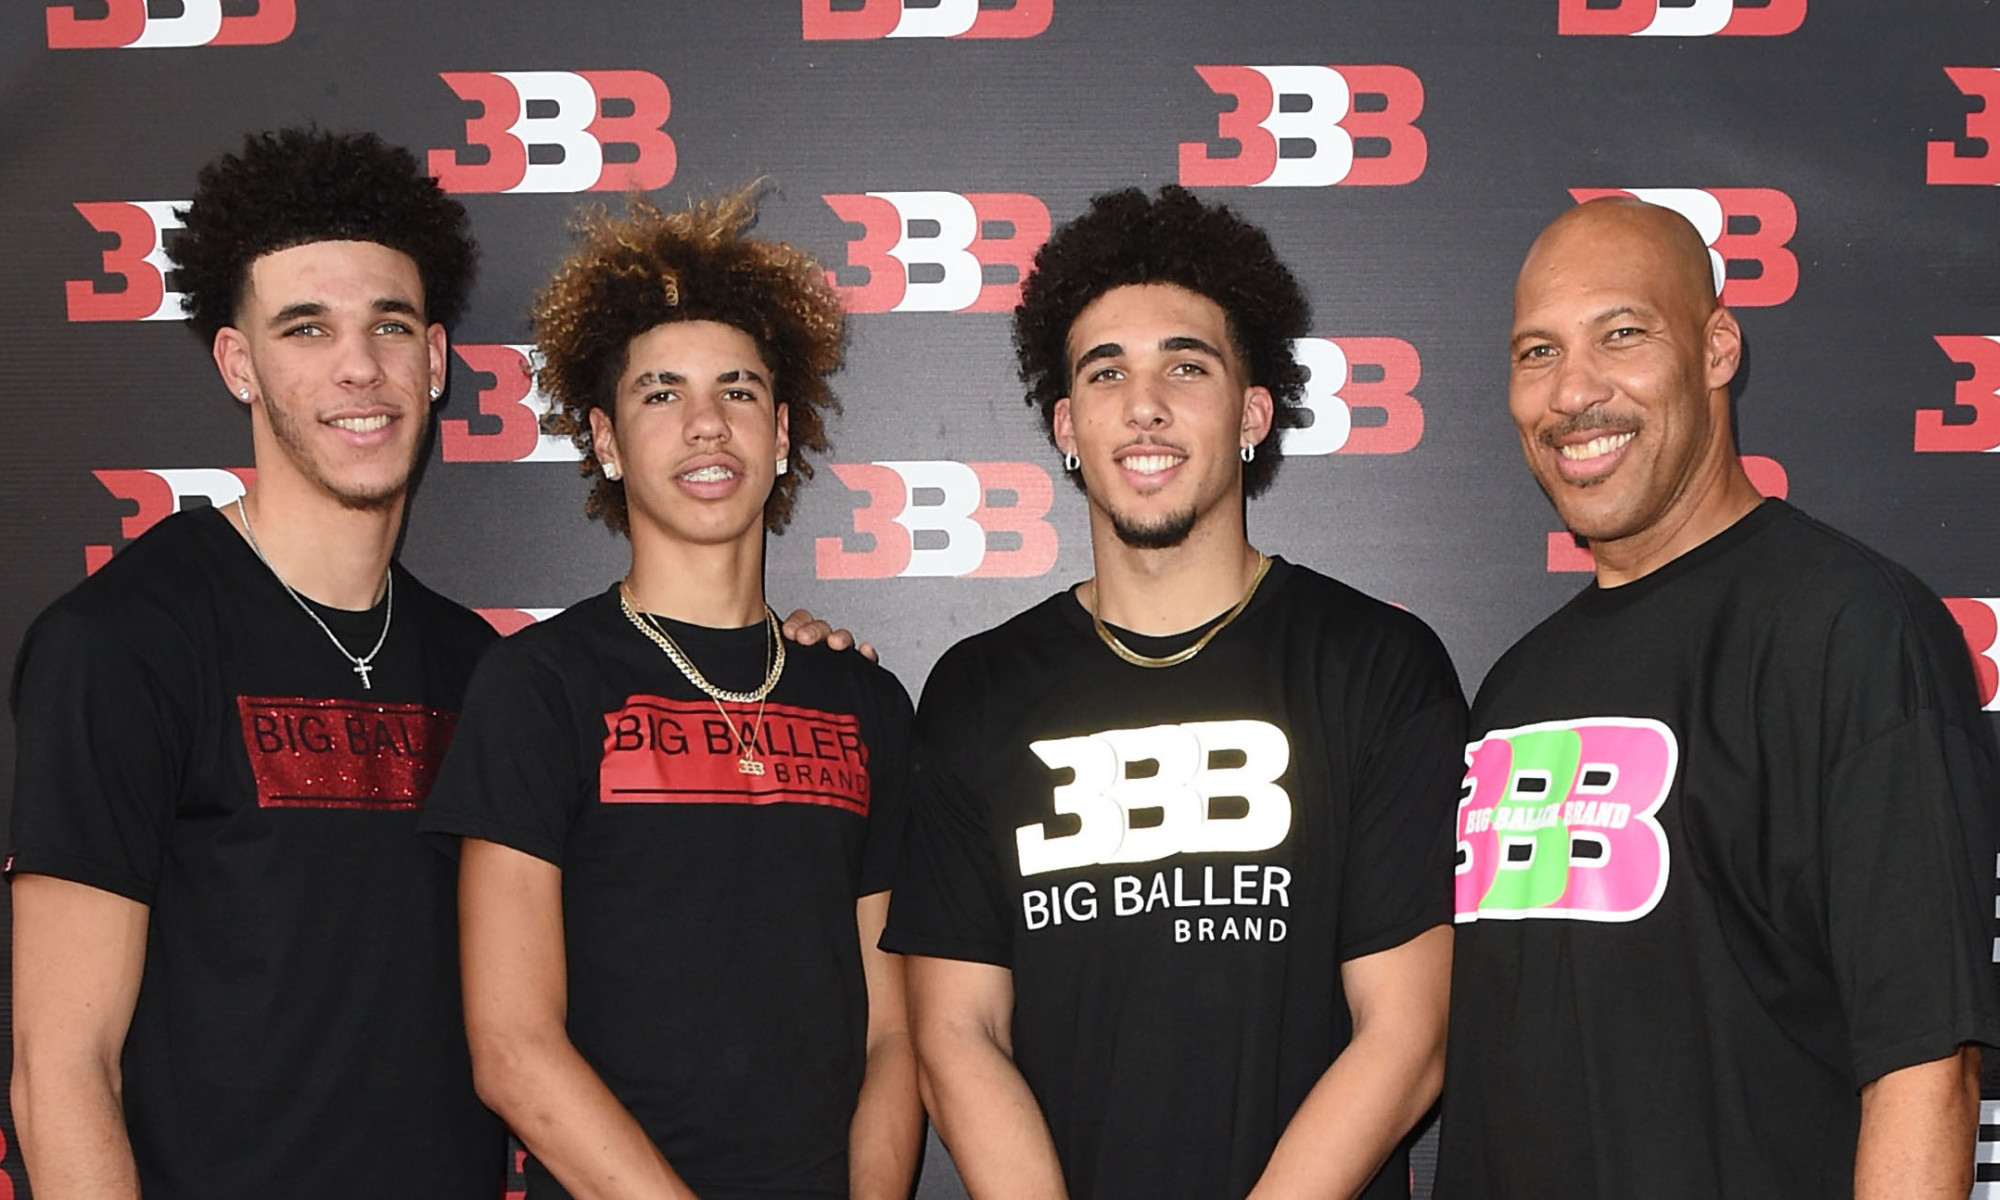 Fans line-up in New York for the Big Baller Brand Pop-up Shop